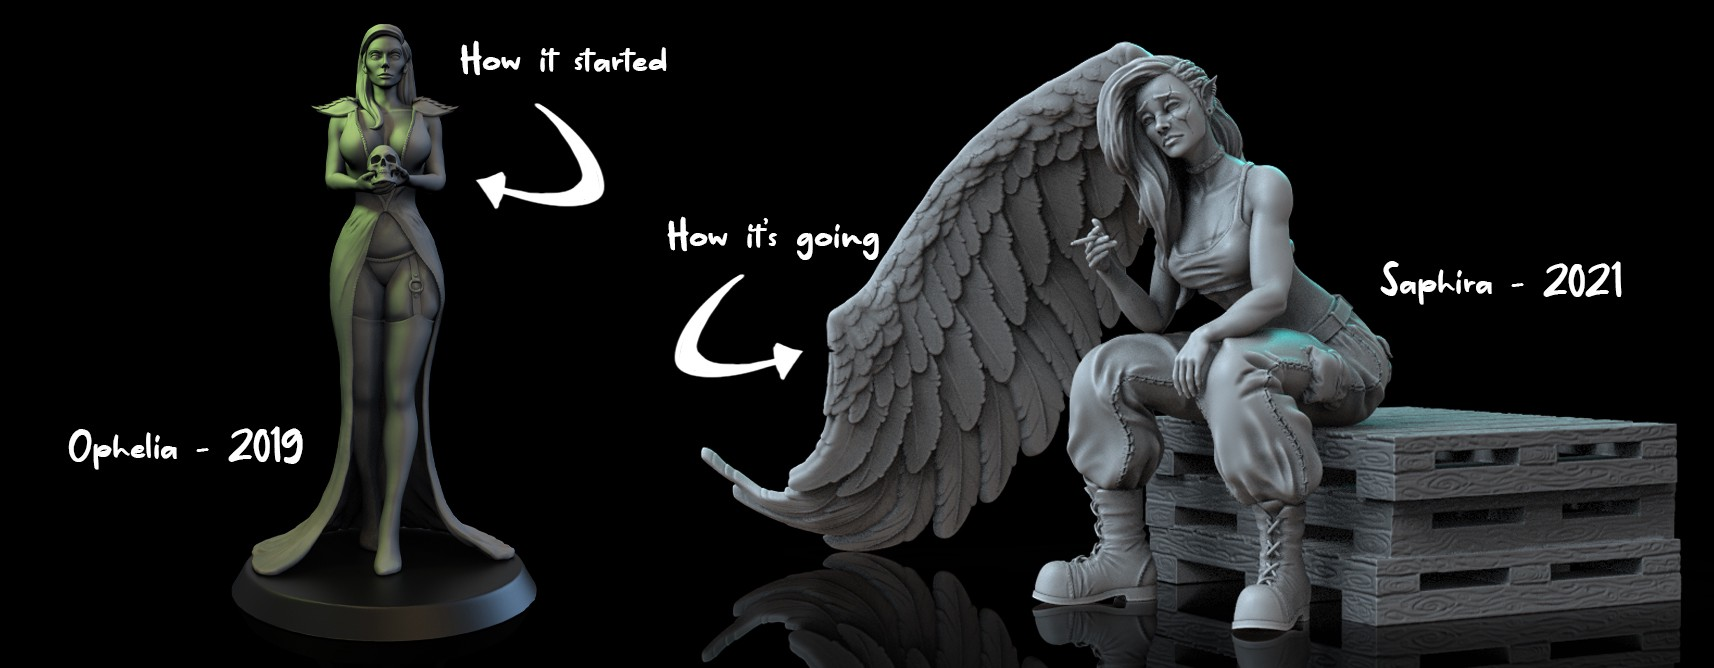 Left: Ophelia, a tall necromancer witch holding a skull, wearing a split dress, stockings and garters. Text: 'How it started'. Right: Saphira, a one winged angel sitting on a stack of palets holding a cigarette, wearing cargo pants, sports bra and military style boots. Text: 'How it's going'